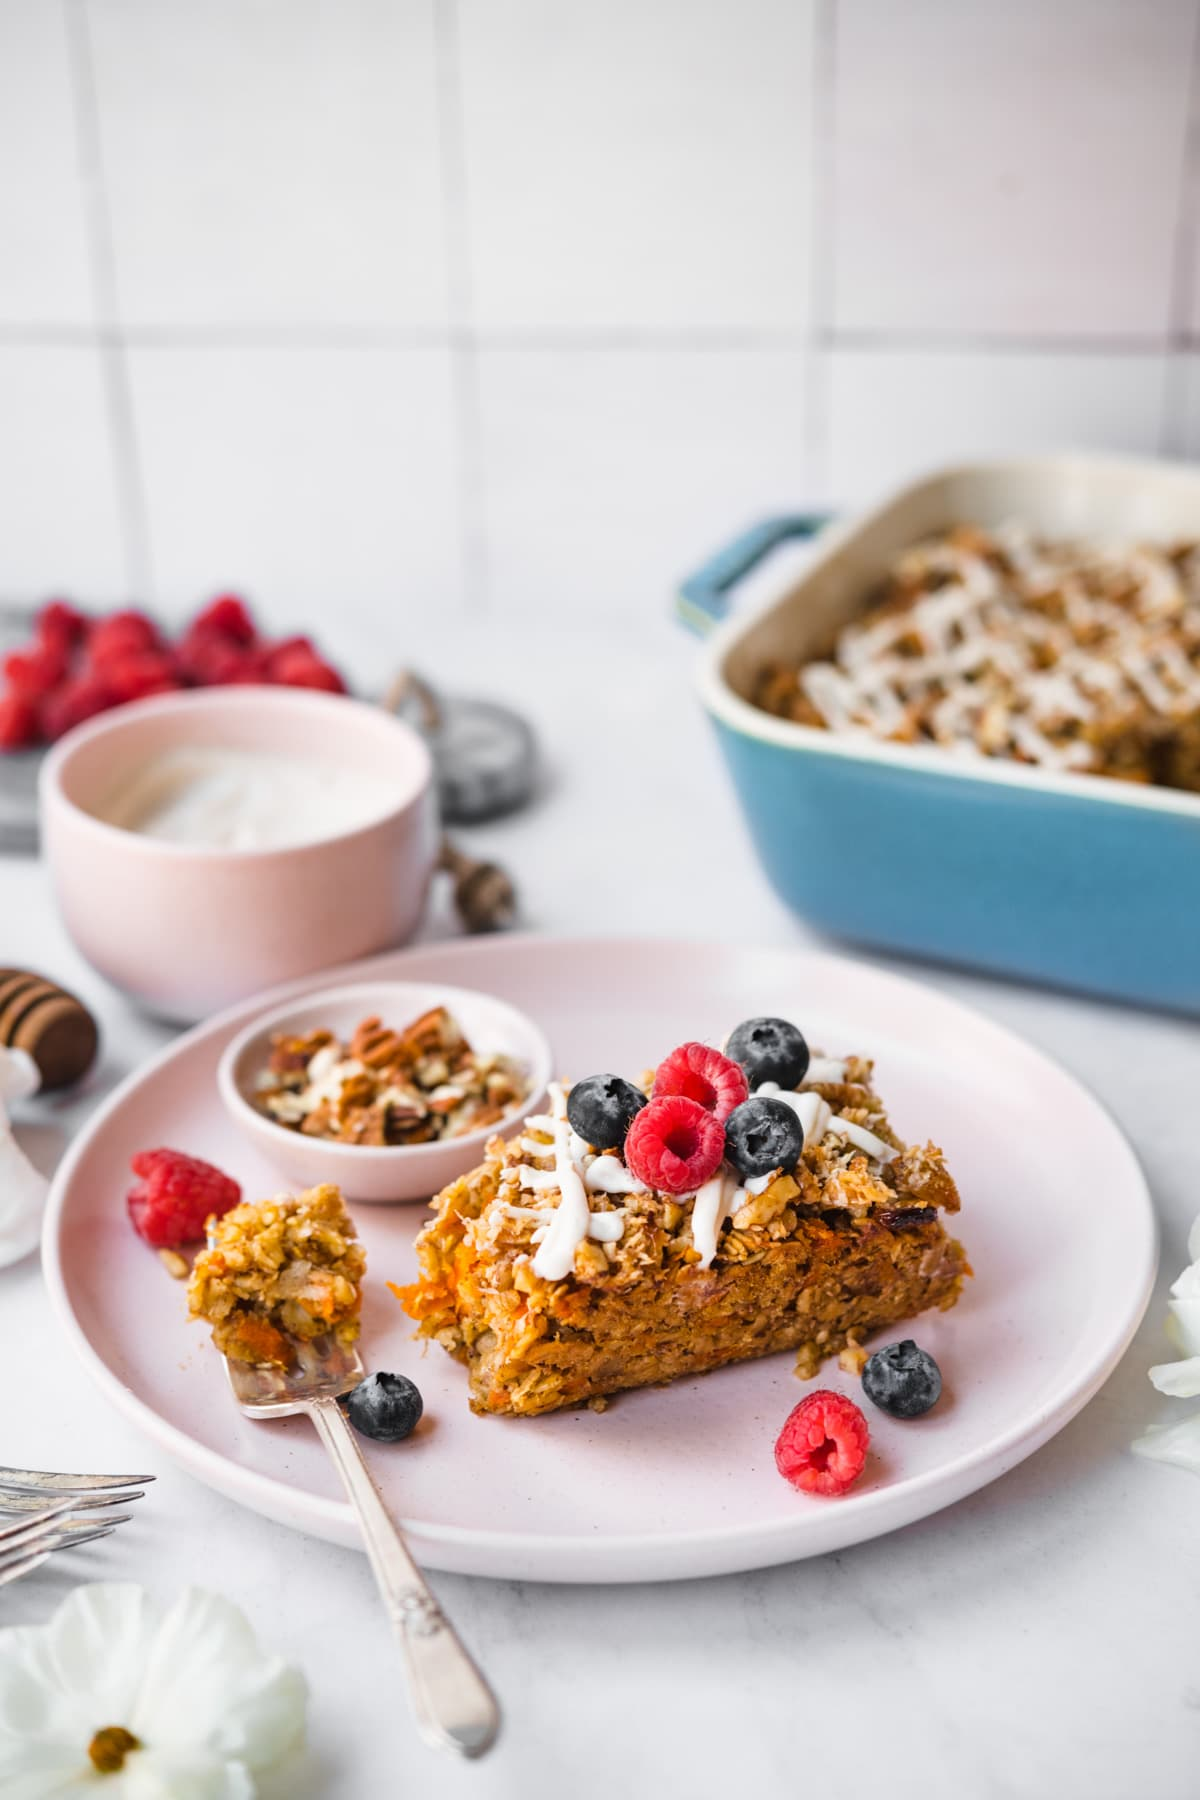 slice of vegan carrot cake baked oatmeal with fresh berries on top on a pink plate.